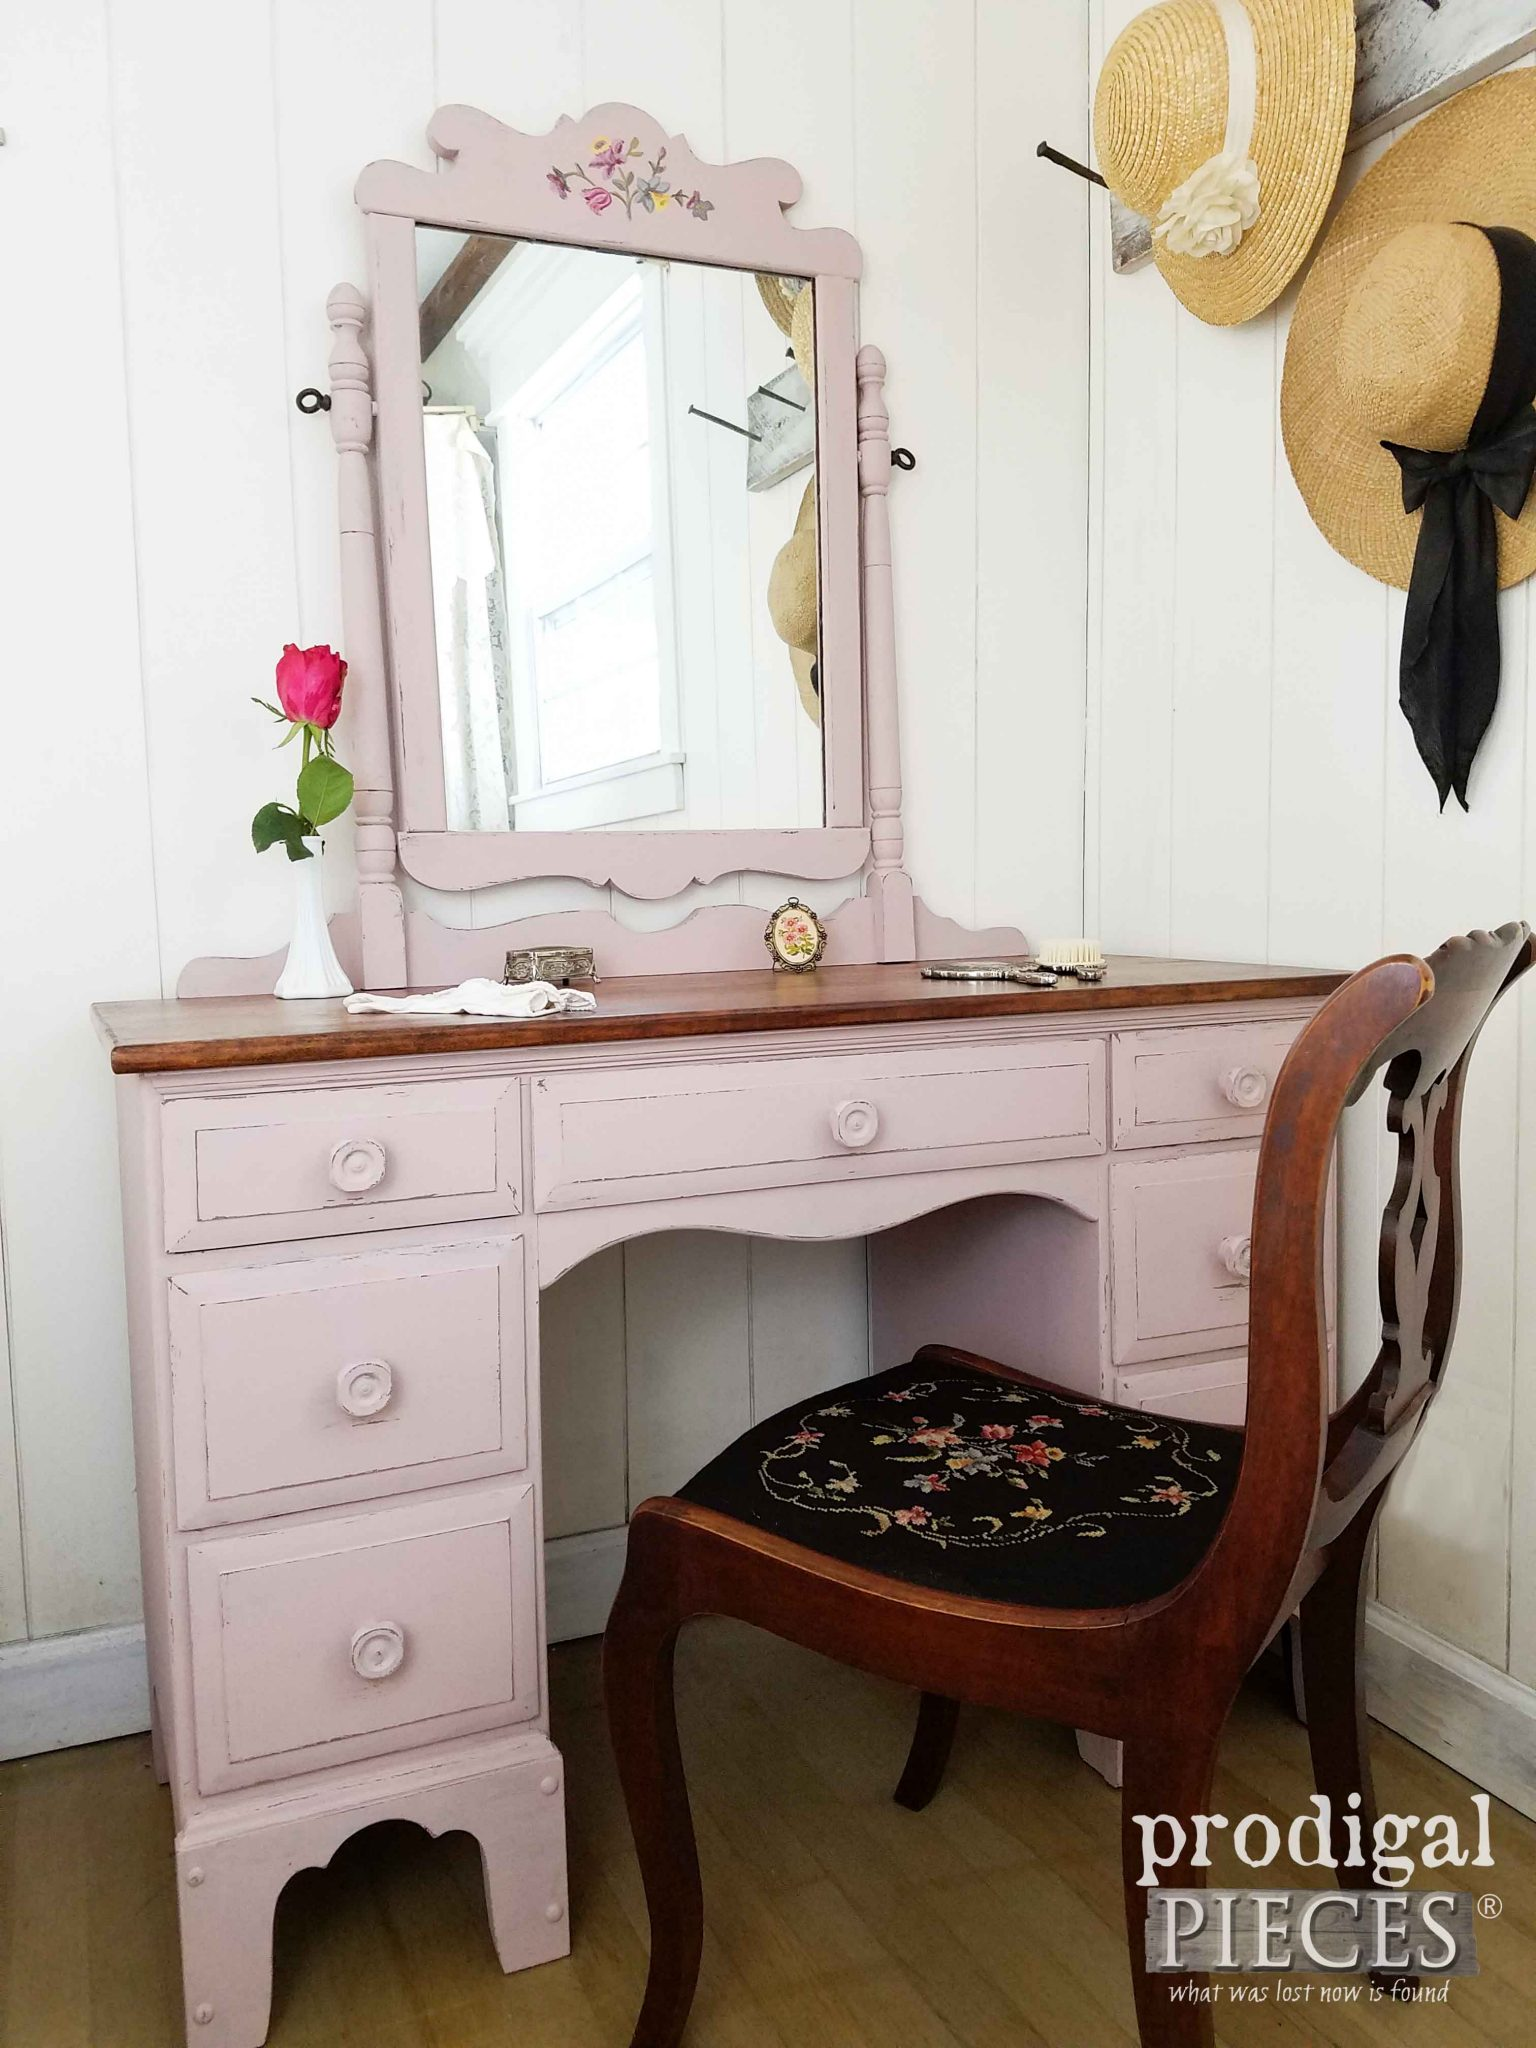 Vintage Dressing Table with Needlepoint Chair in Tea Rose Pink by Prodigal Pieces | prodigalpieces.com